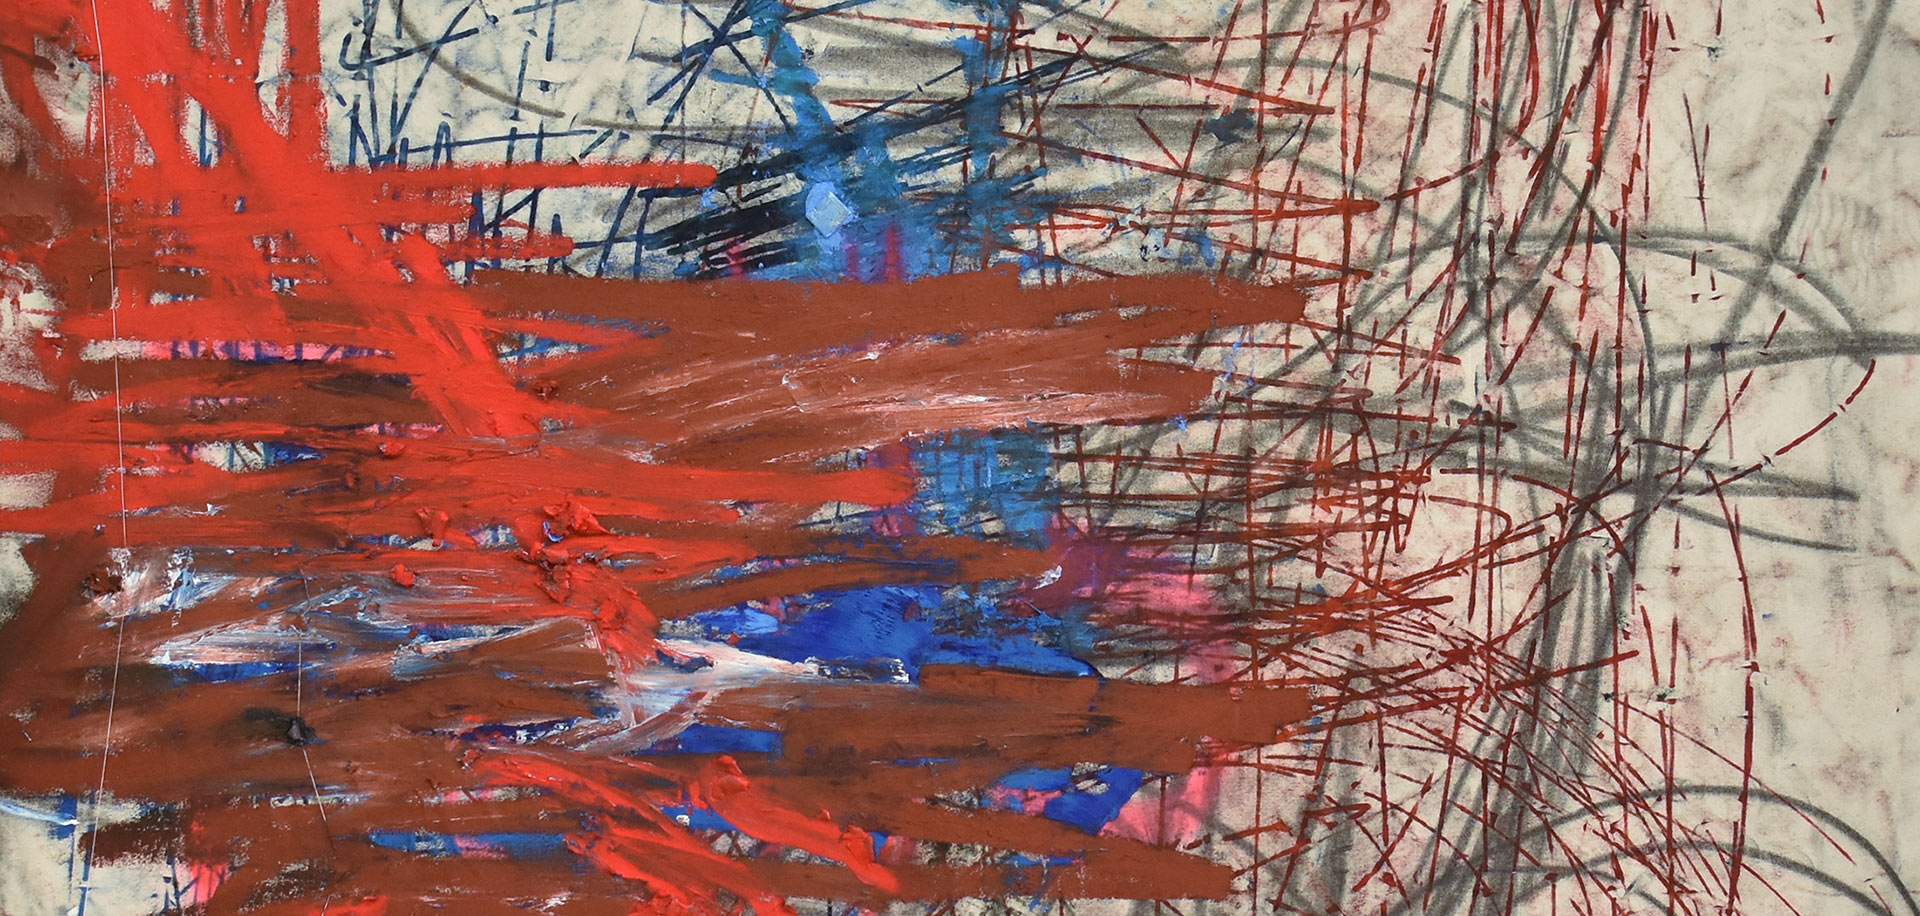 A detail from an artwork by Oscar Murillo, titled (untitled) ética y estética, dated 2020.